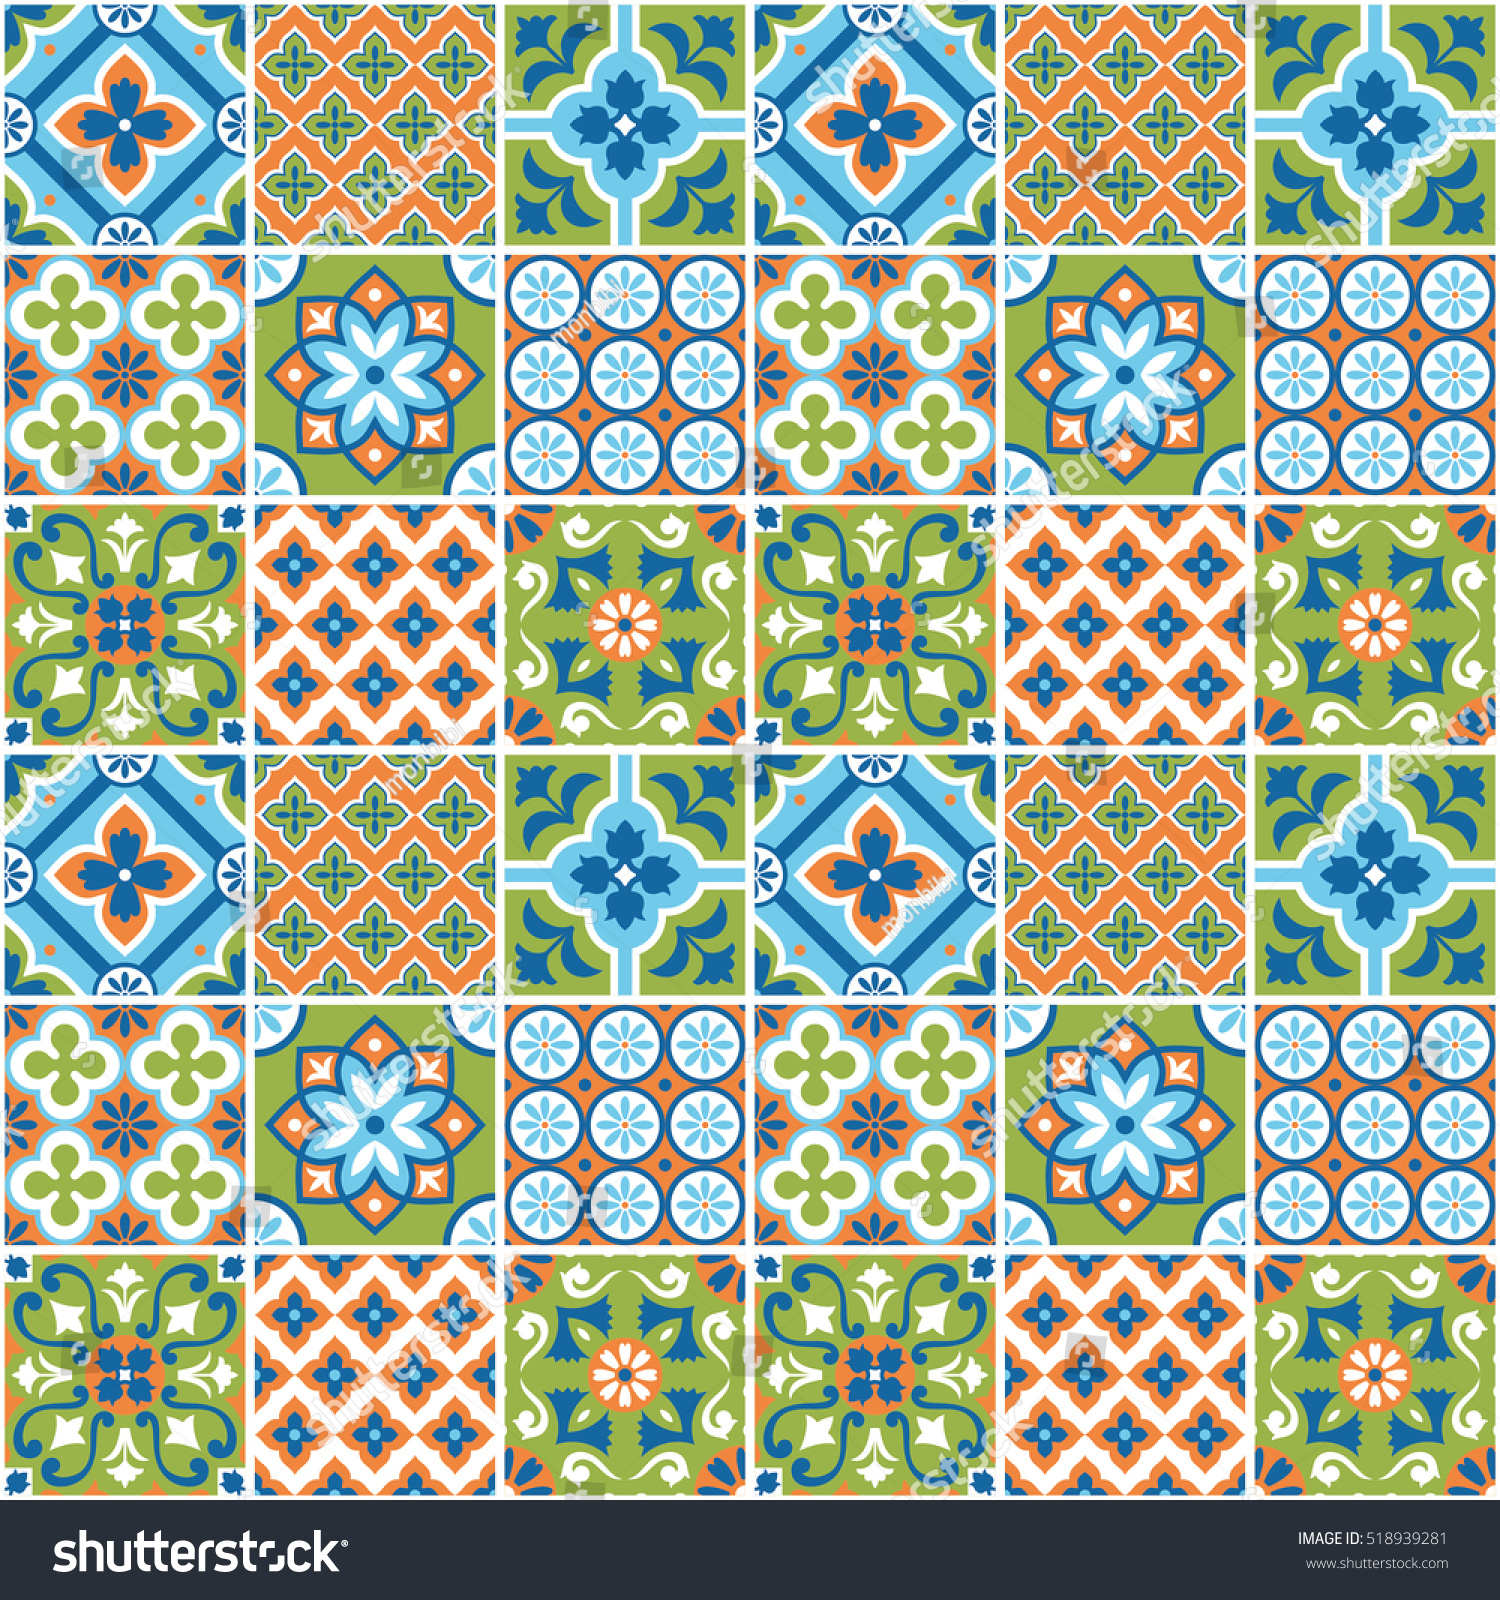 Decorative Colorful Tile Pattern Design Vector Stock Vector ...